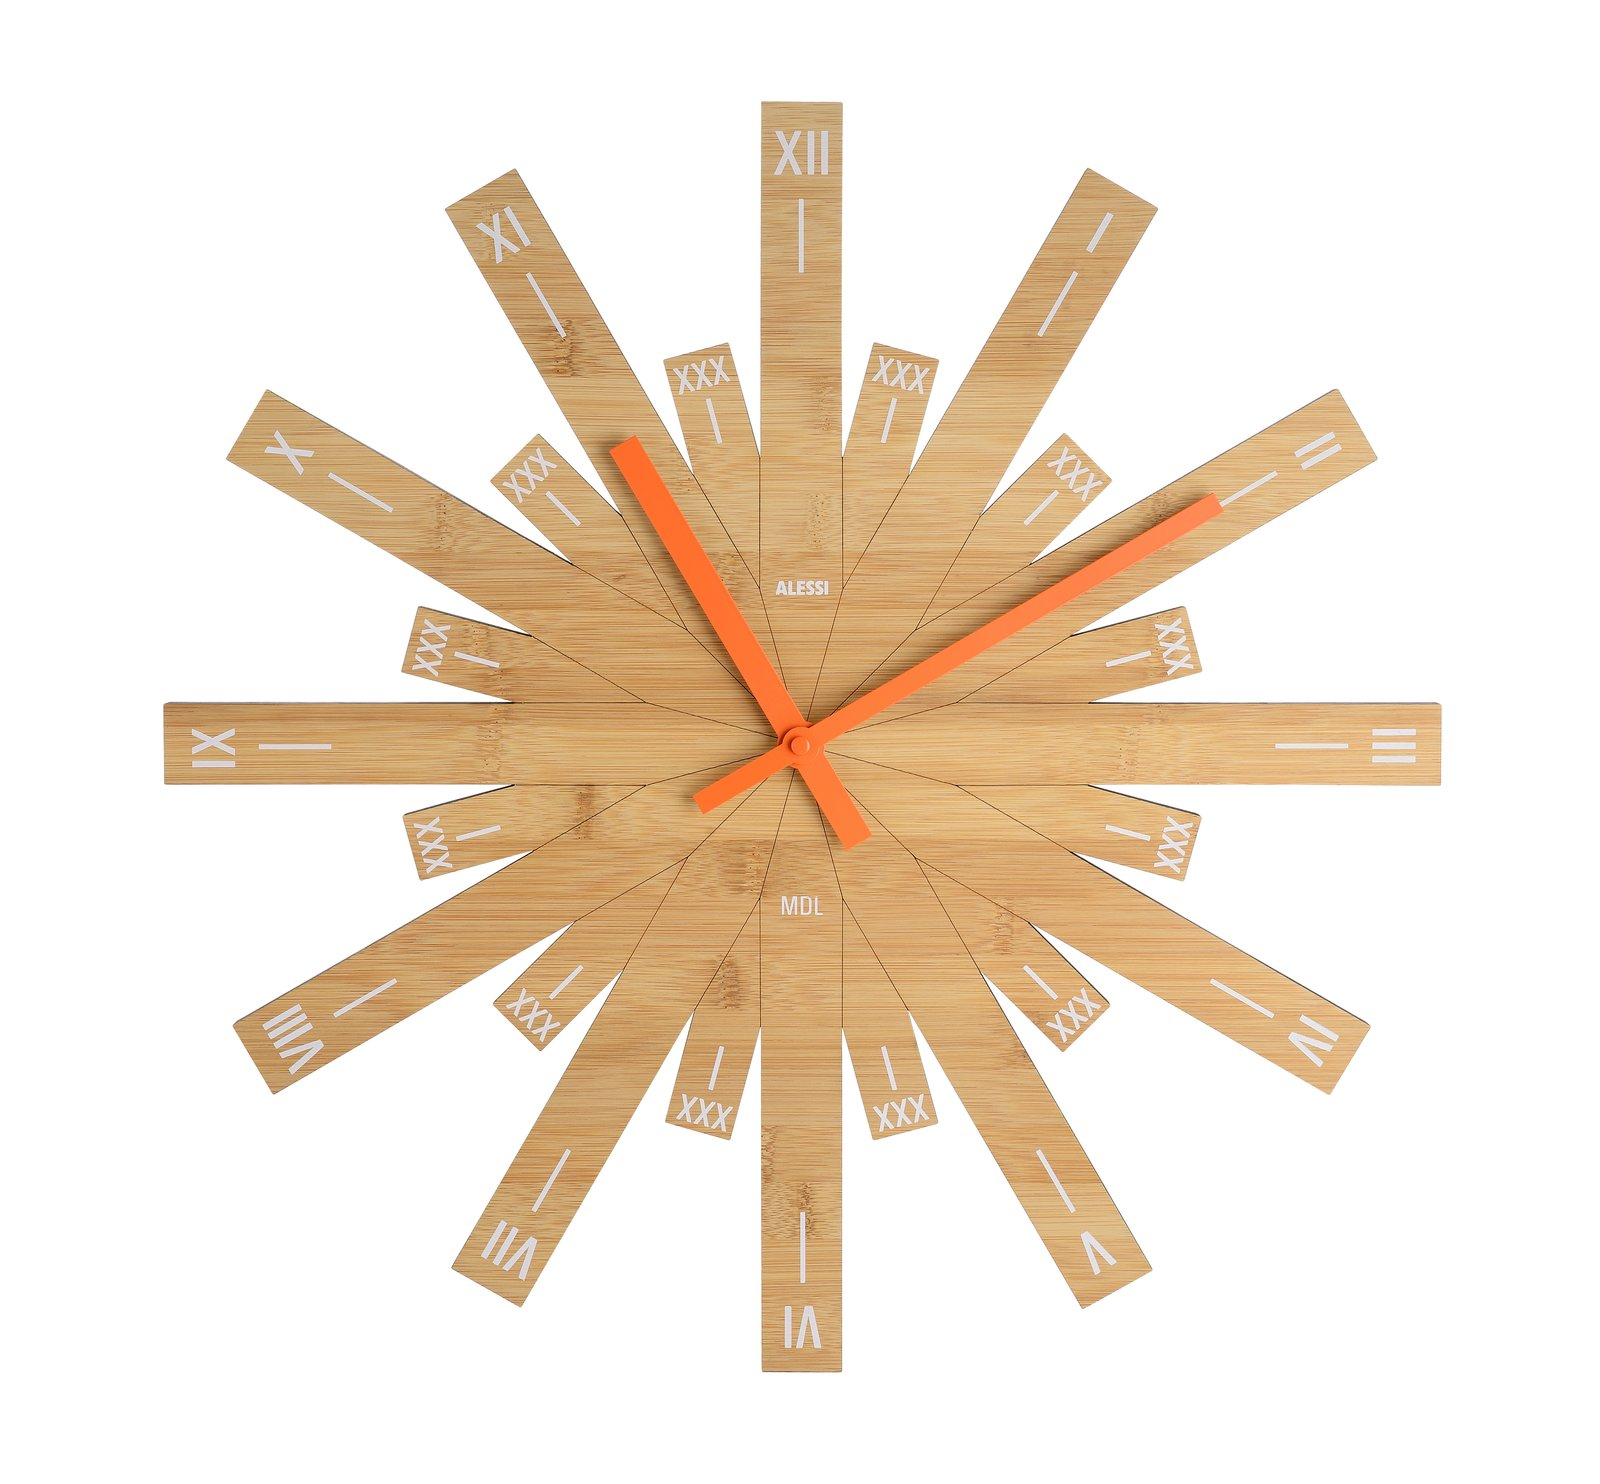 Raggiante, 2017.  A recent creation  for Italian manufacturer Alessi, this bamboo clock features Roman numerals and a distinctive form with a diameter of nearly  20 inches. alessi.com  Photo 9 of 14 in Michele De Lucchi